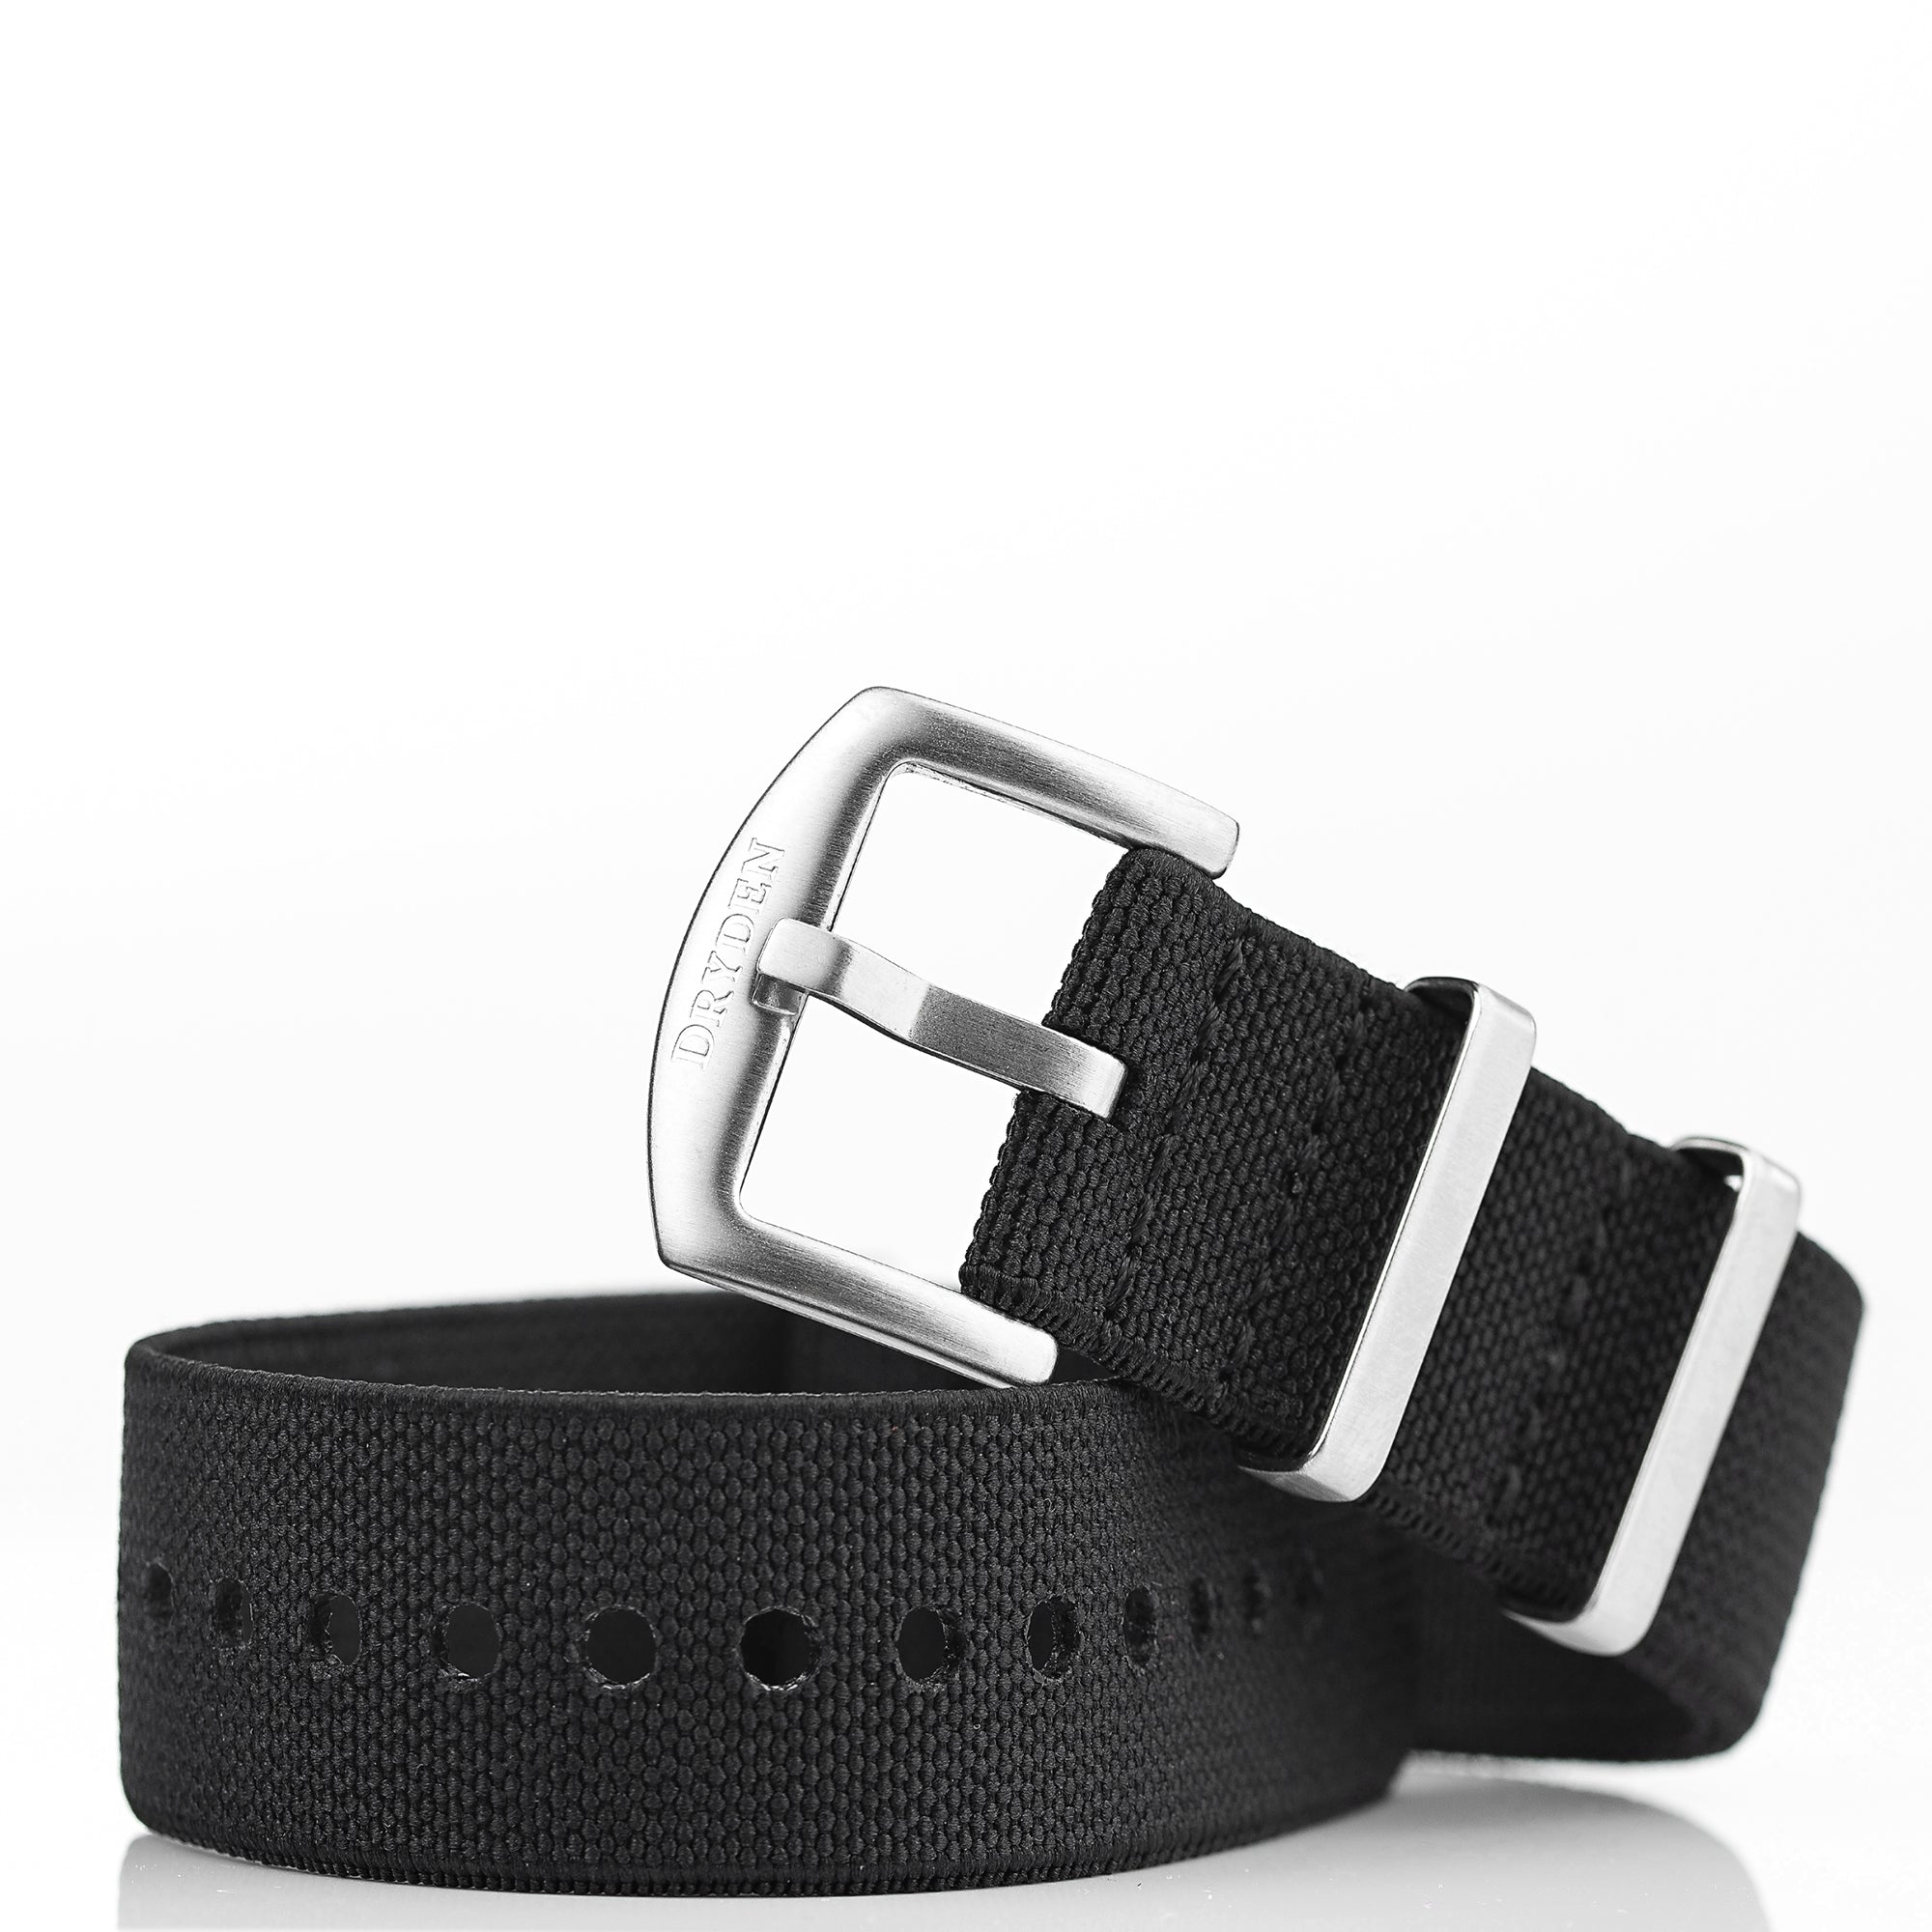 22mm Woven Elastic Nylon Watch Strap - Black